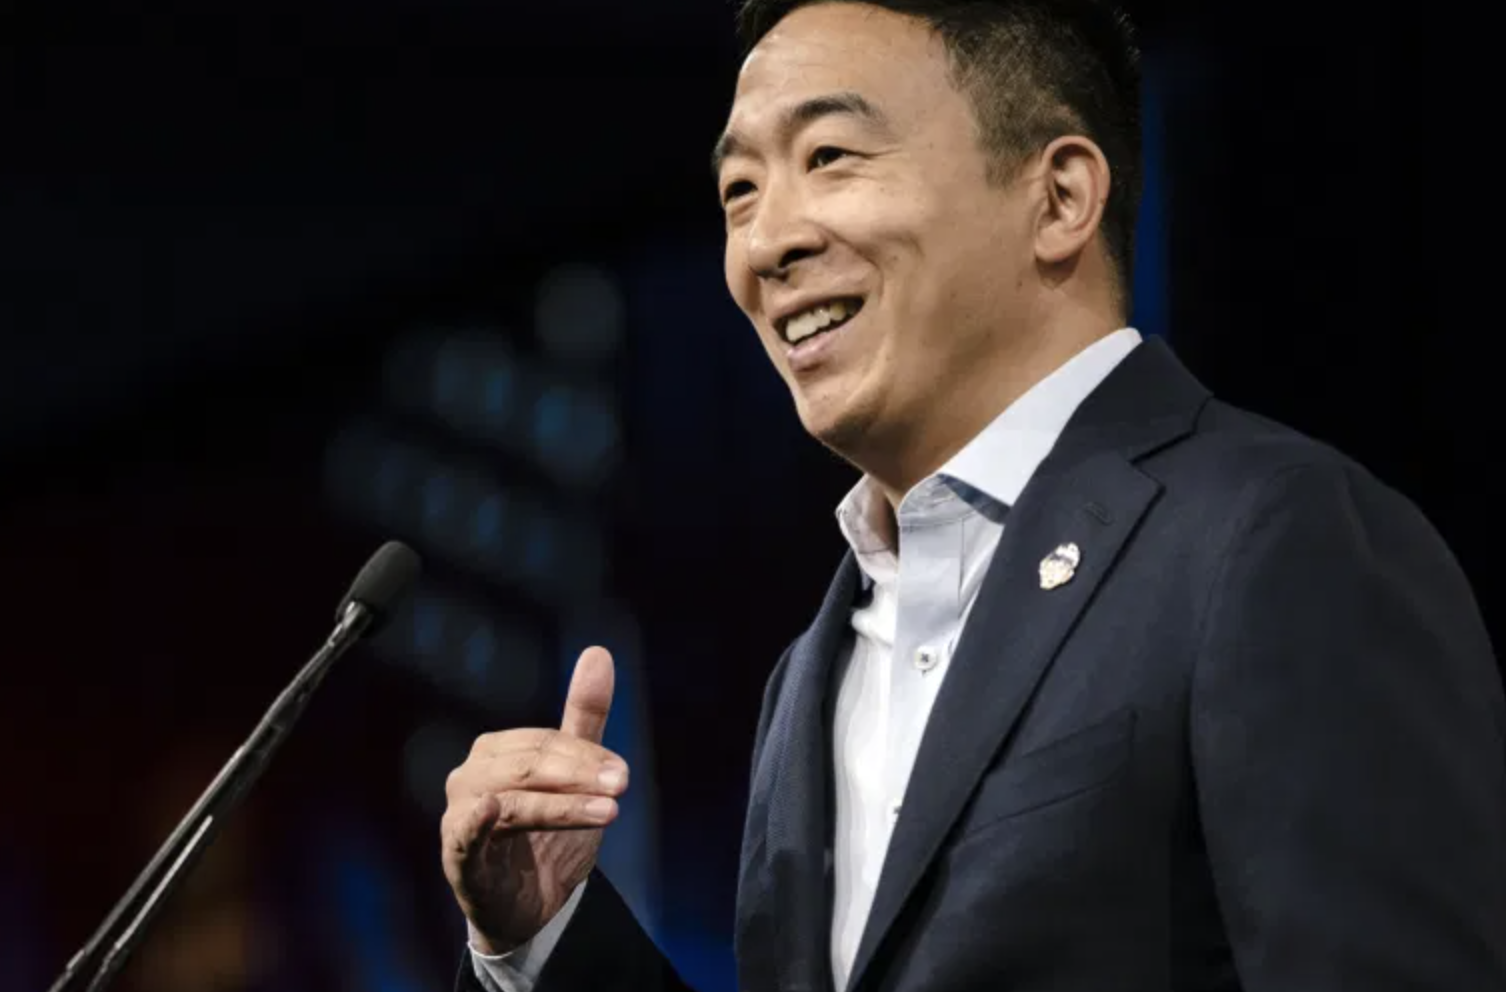 Andrew Yang Kicks Off NYC Mayoral Run With Basic Income Promise